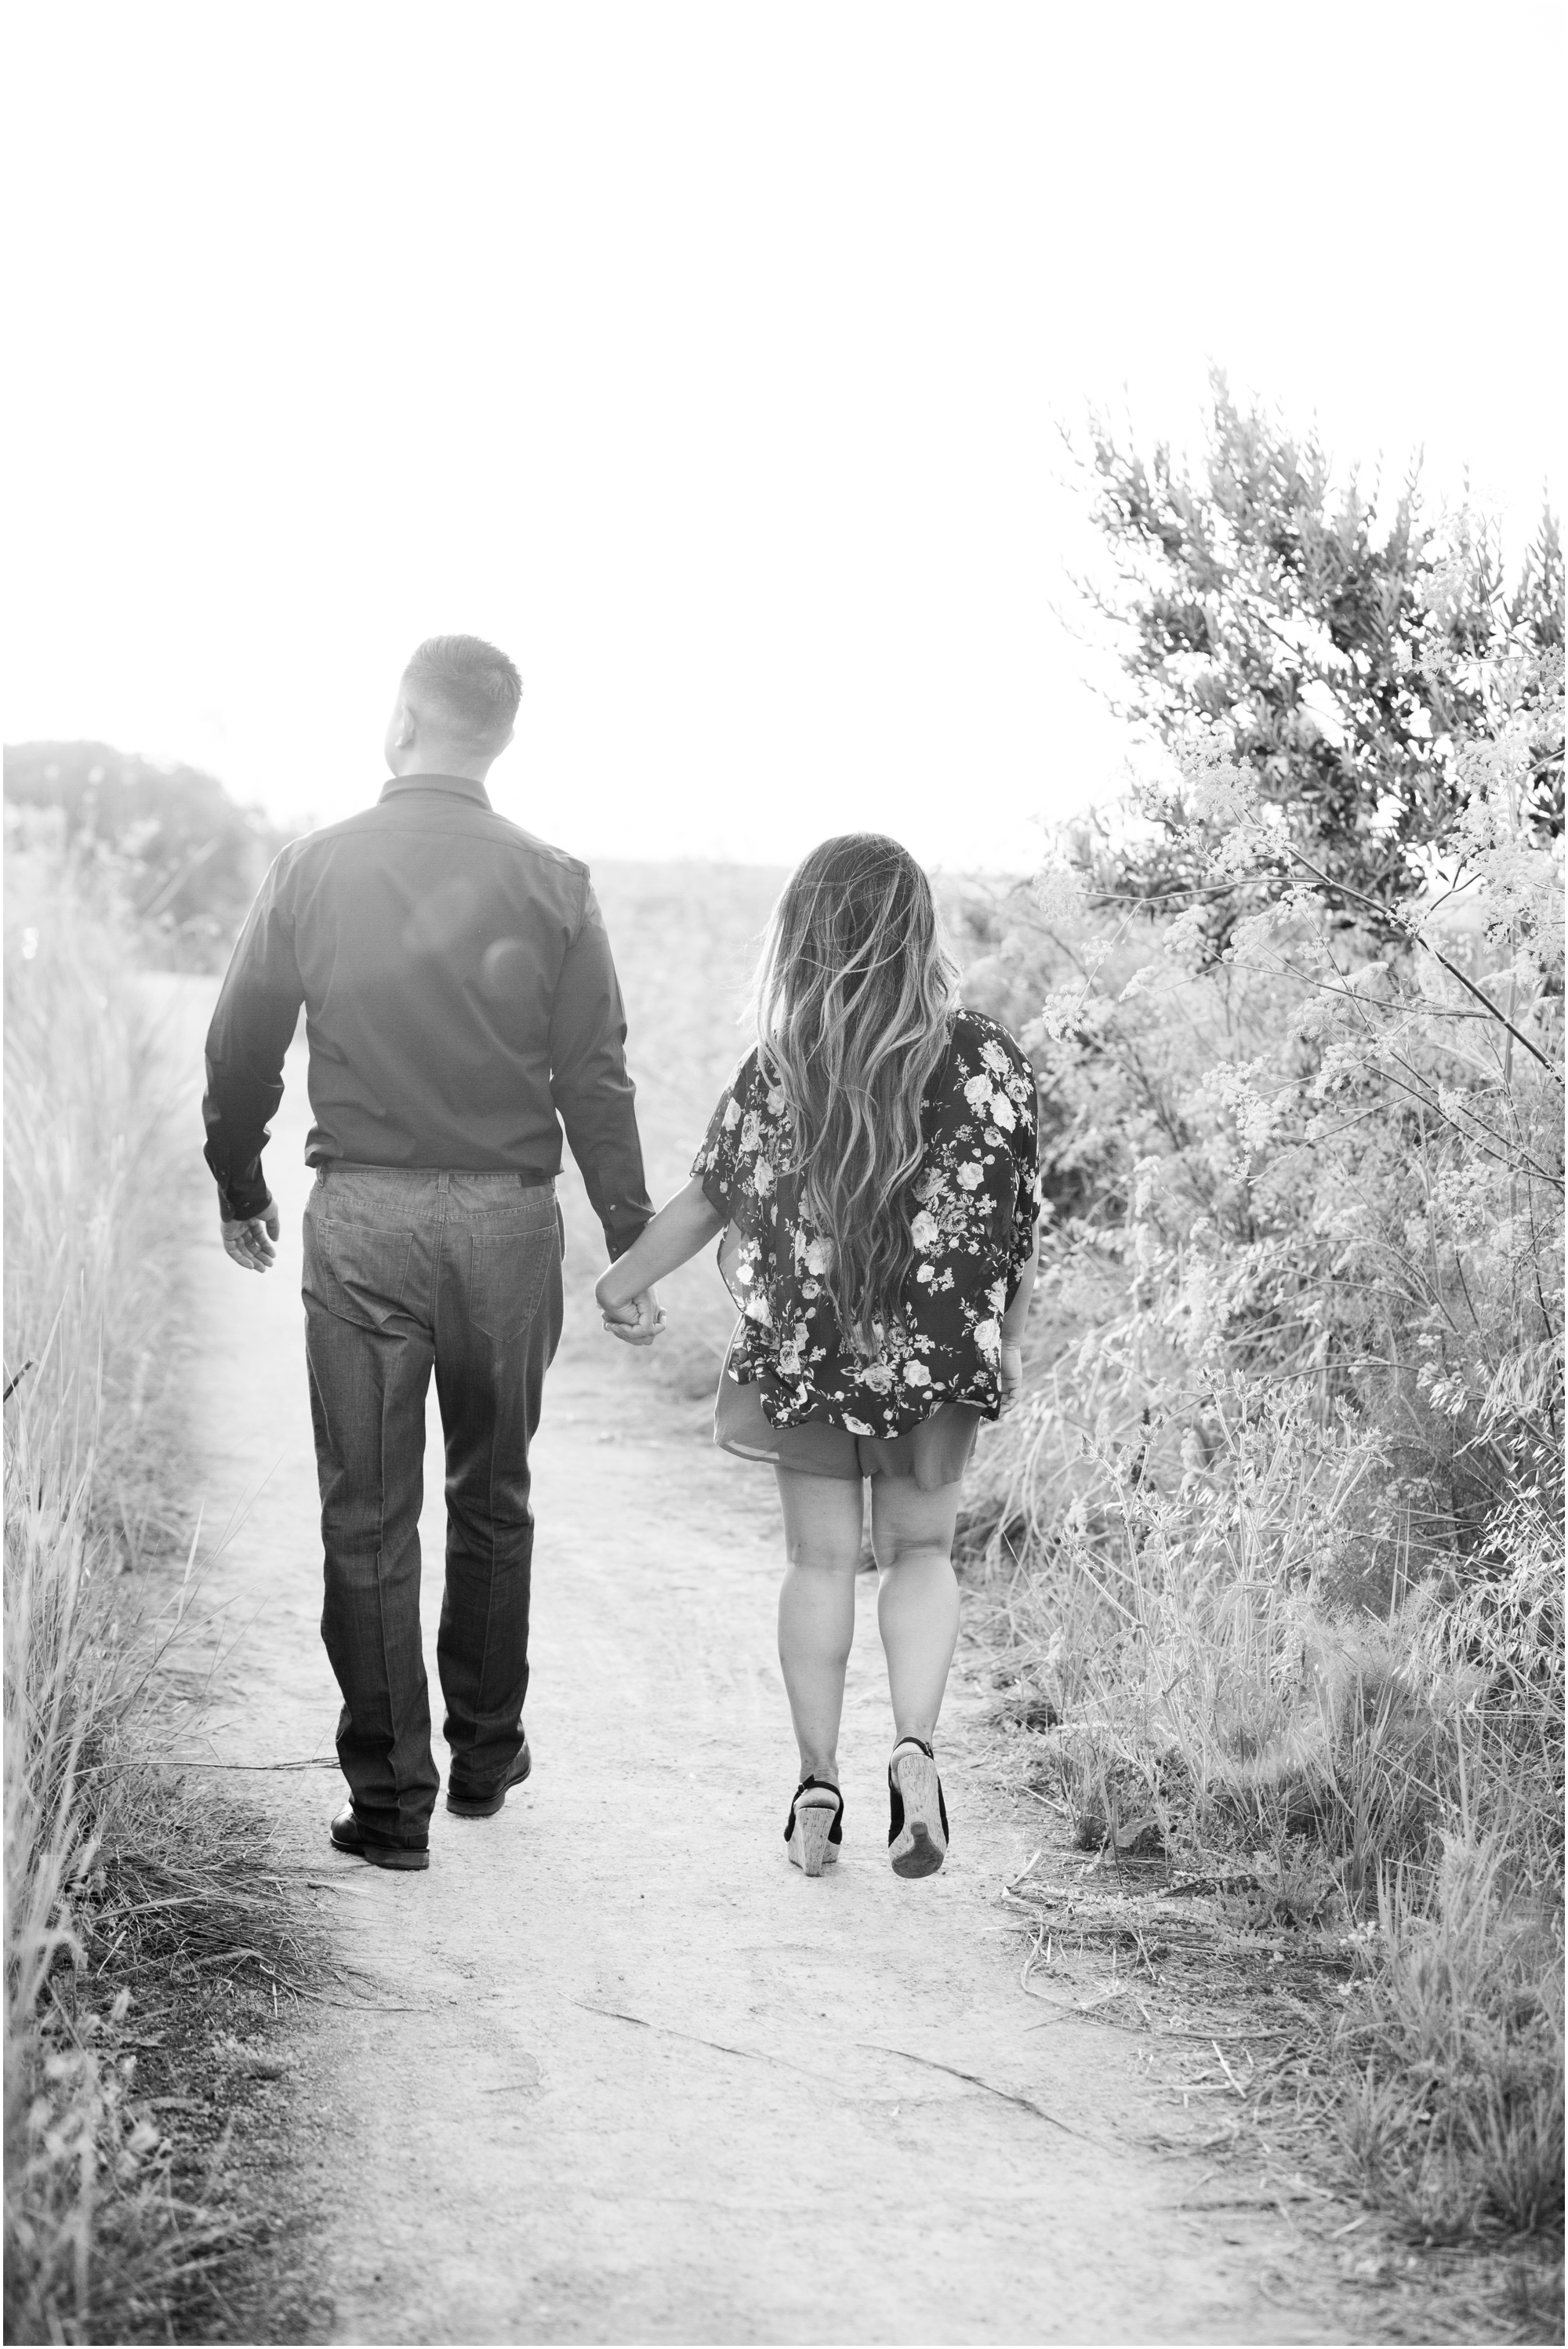 Willow Glan & Alviso Marina engagement pictures by Briana Calderon Photography_2121.jpg